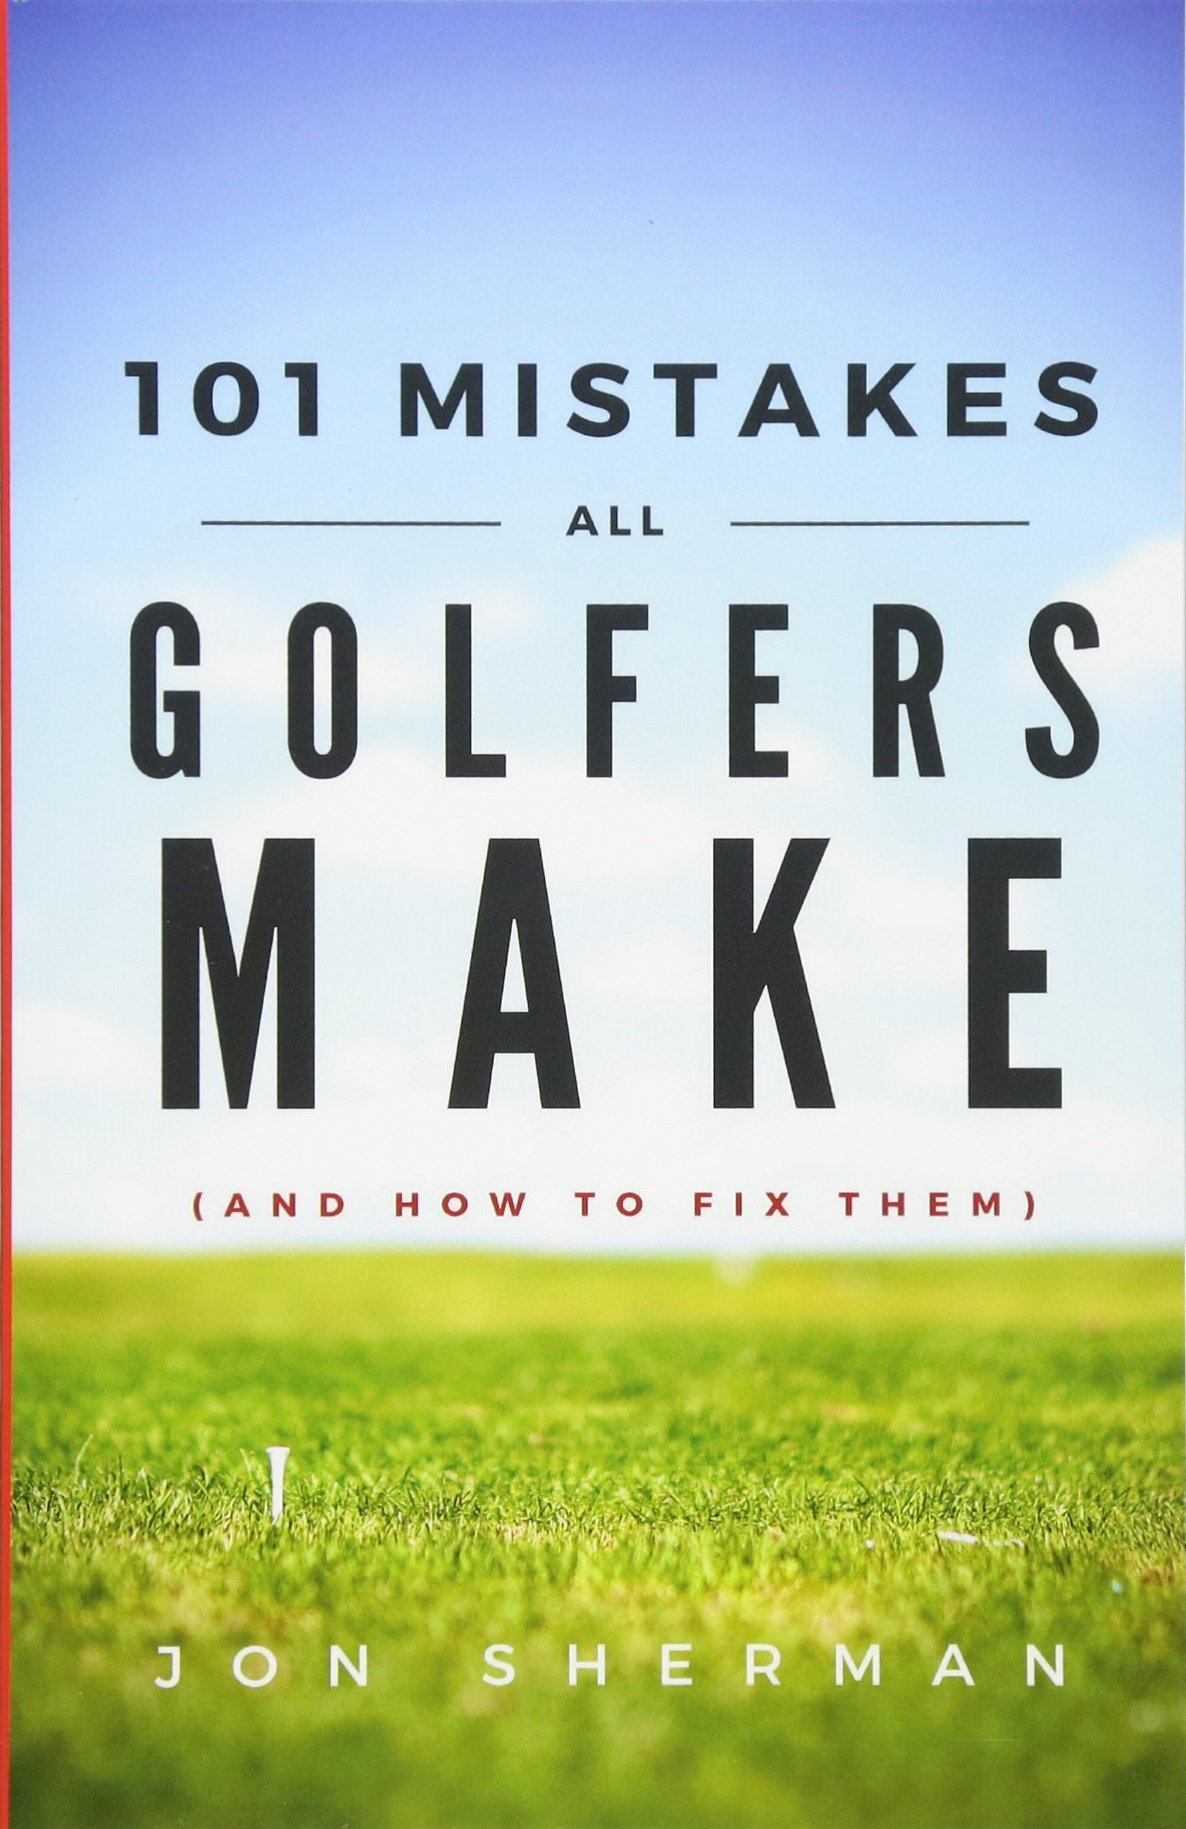 101 Mistakes Golfers Make them product image